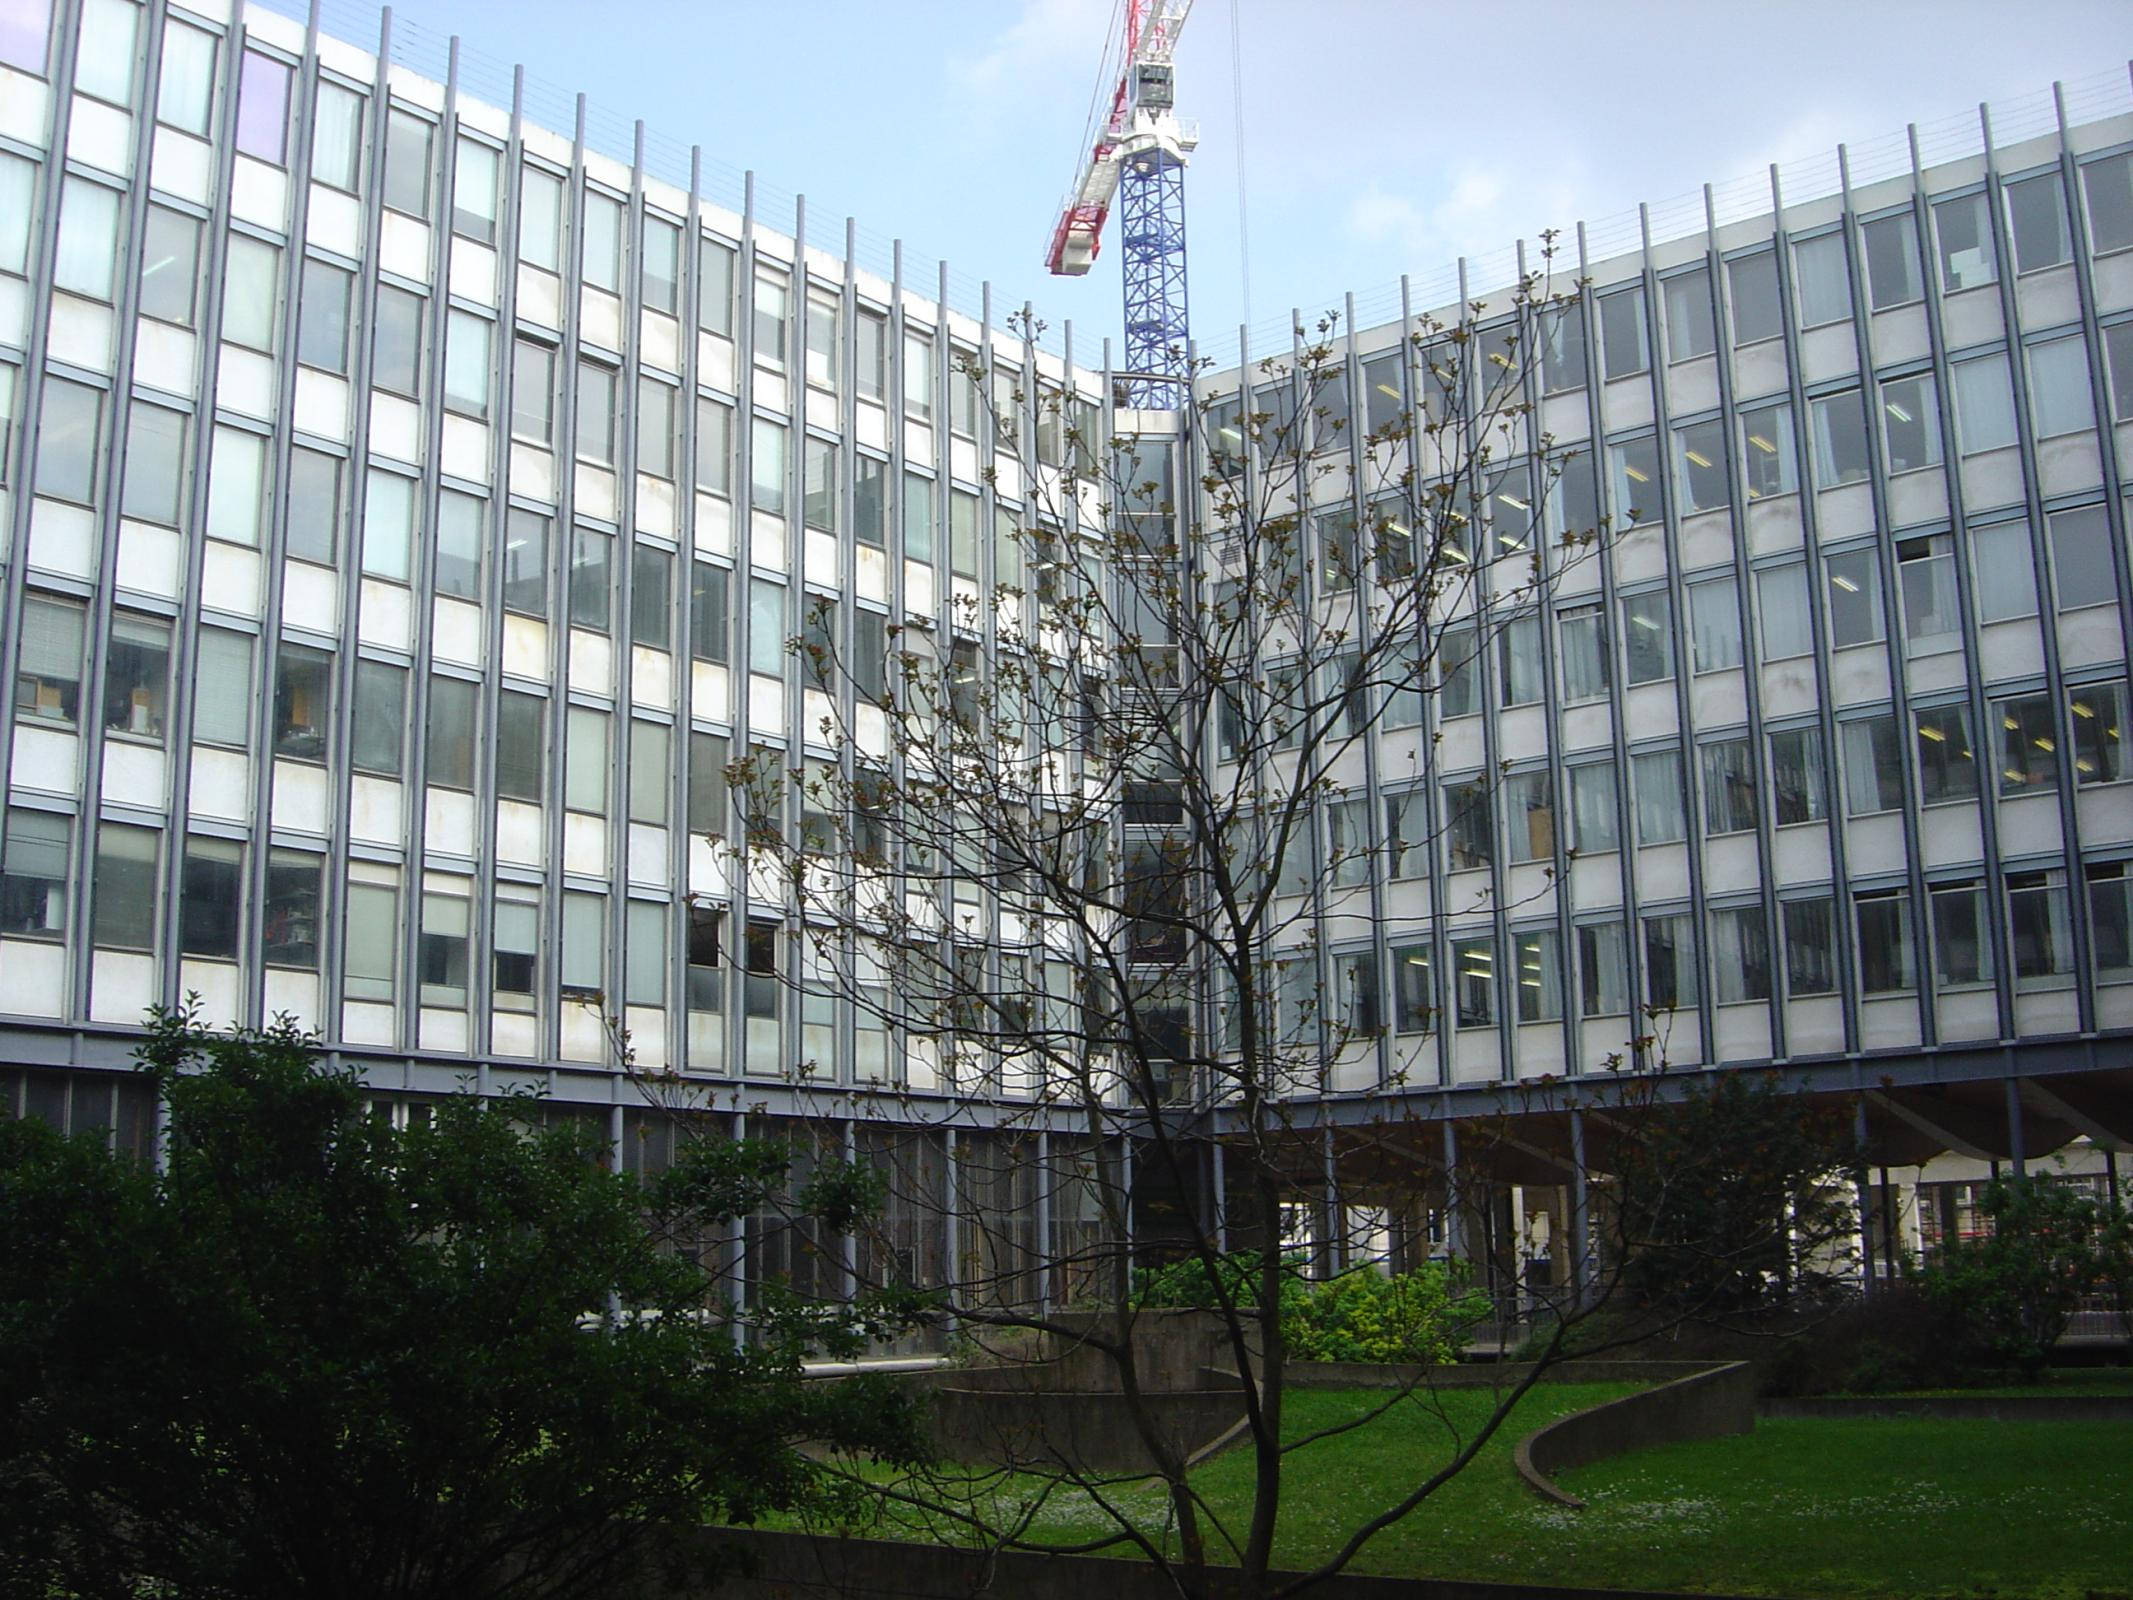 Pierre-and-Marie-Curie University